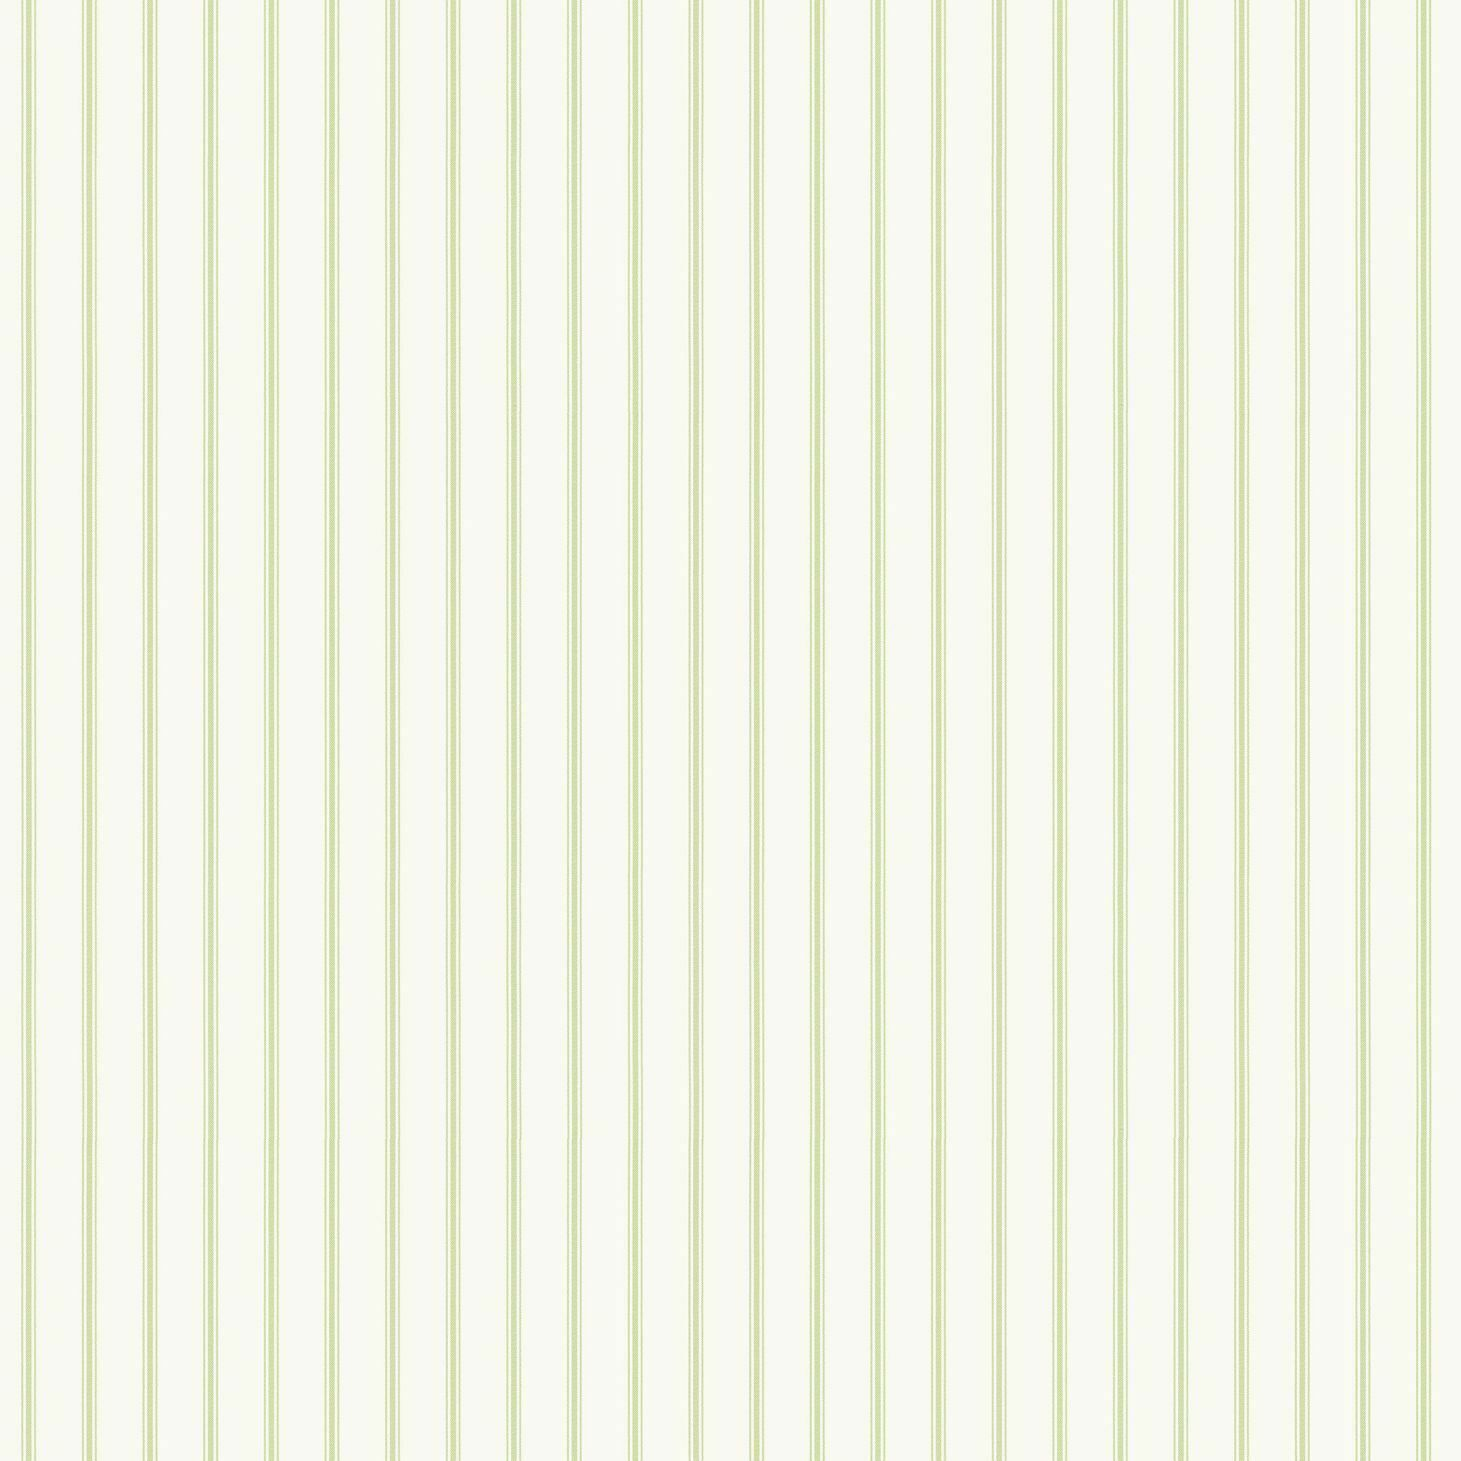 Essener Tapete Simply Stripes 3 Sy33930 green Strisce Righe Tappezzeria in